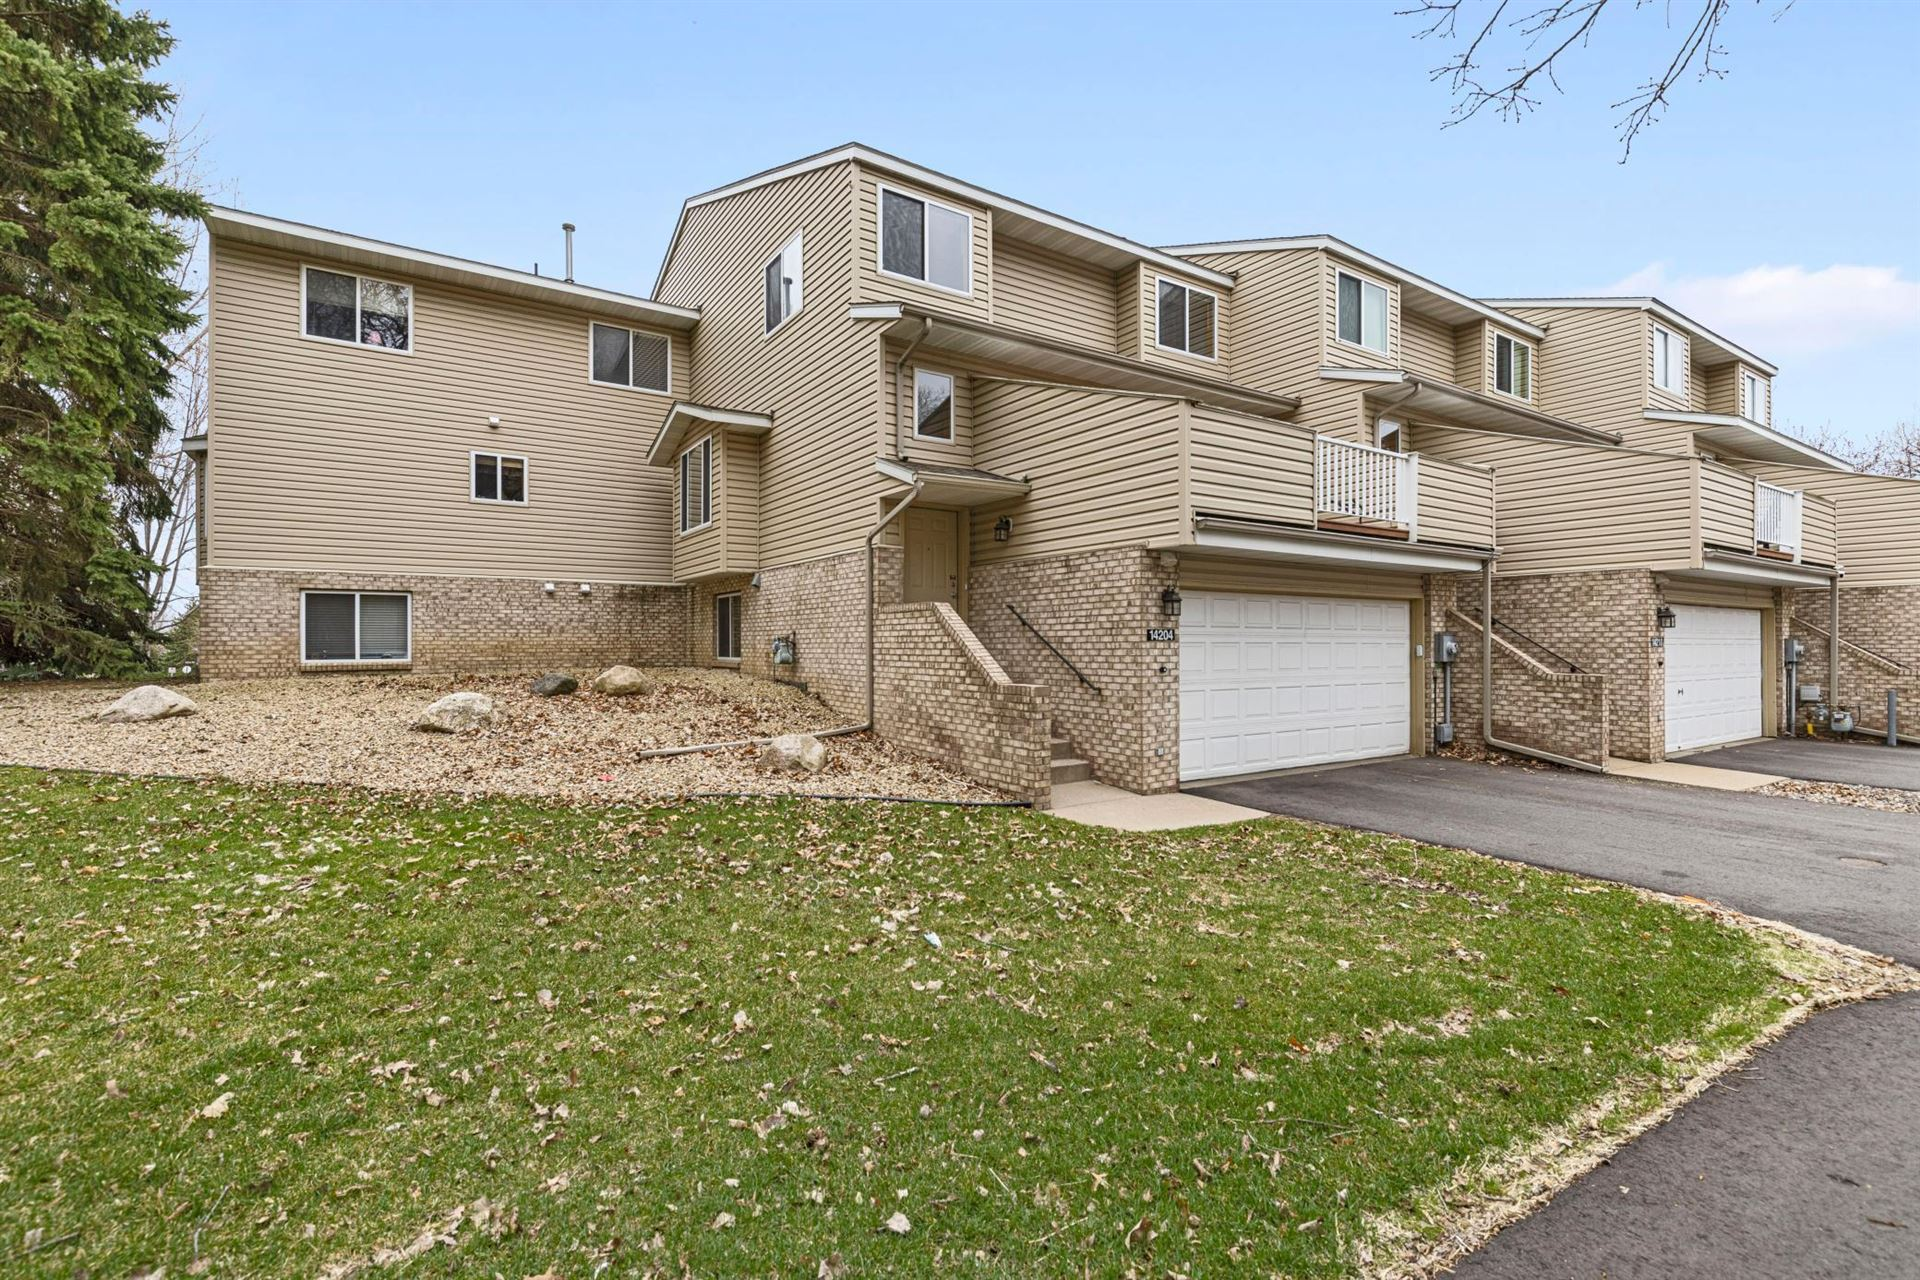 Photo of 14204 Hibiscus Court, Apple Valley, MN 55124 (MLS # 5739604)